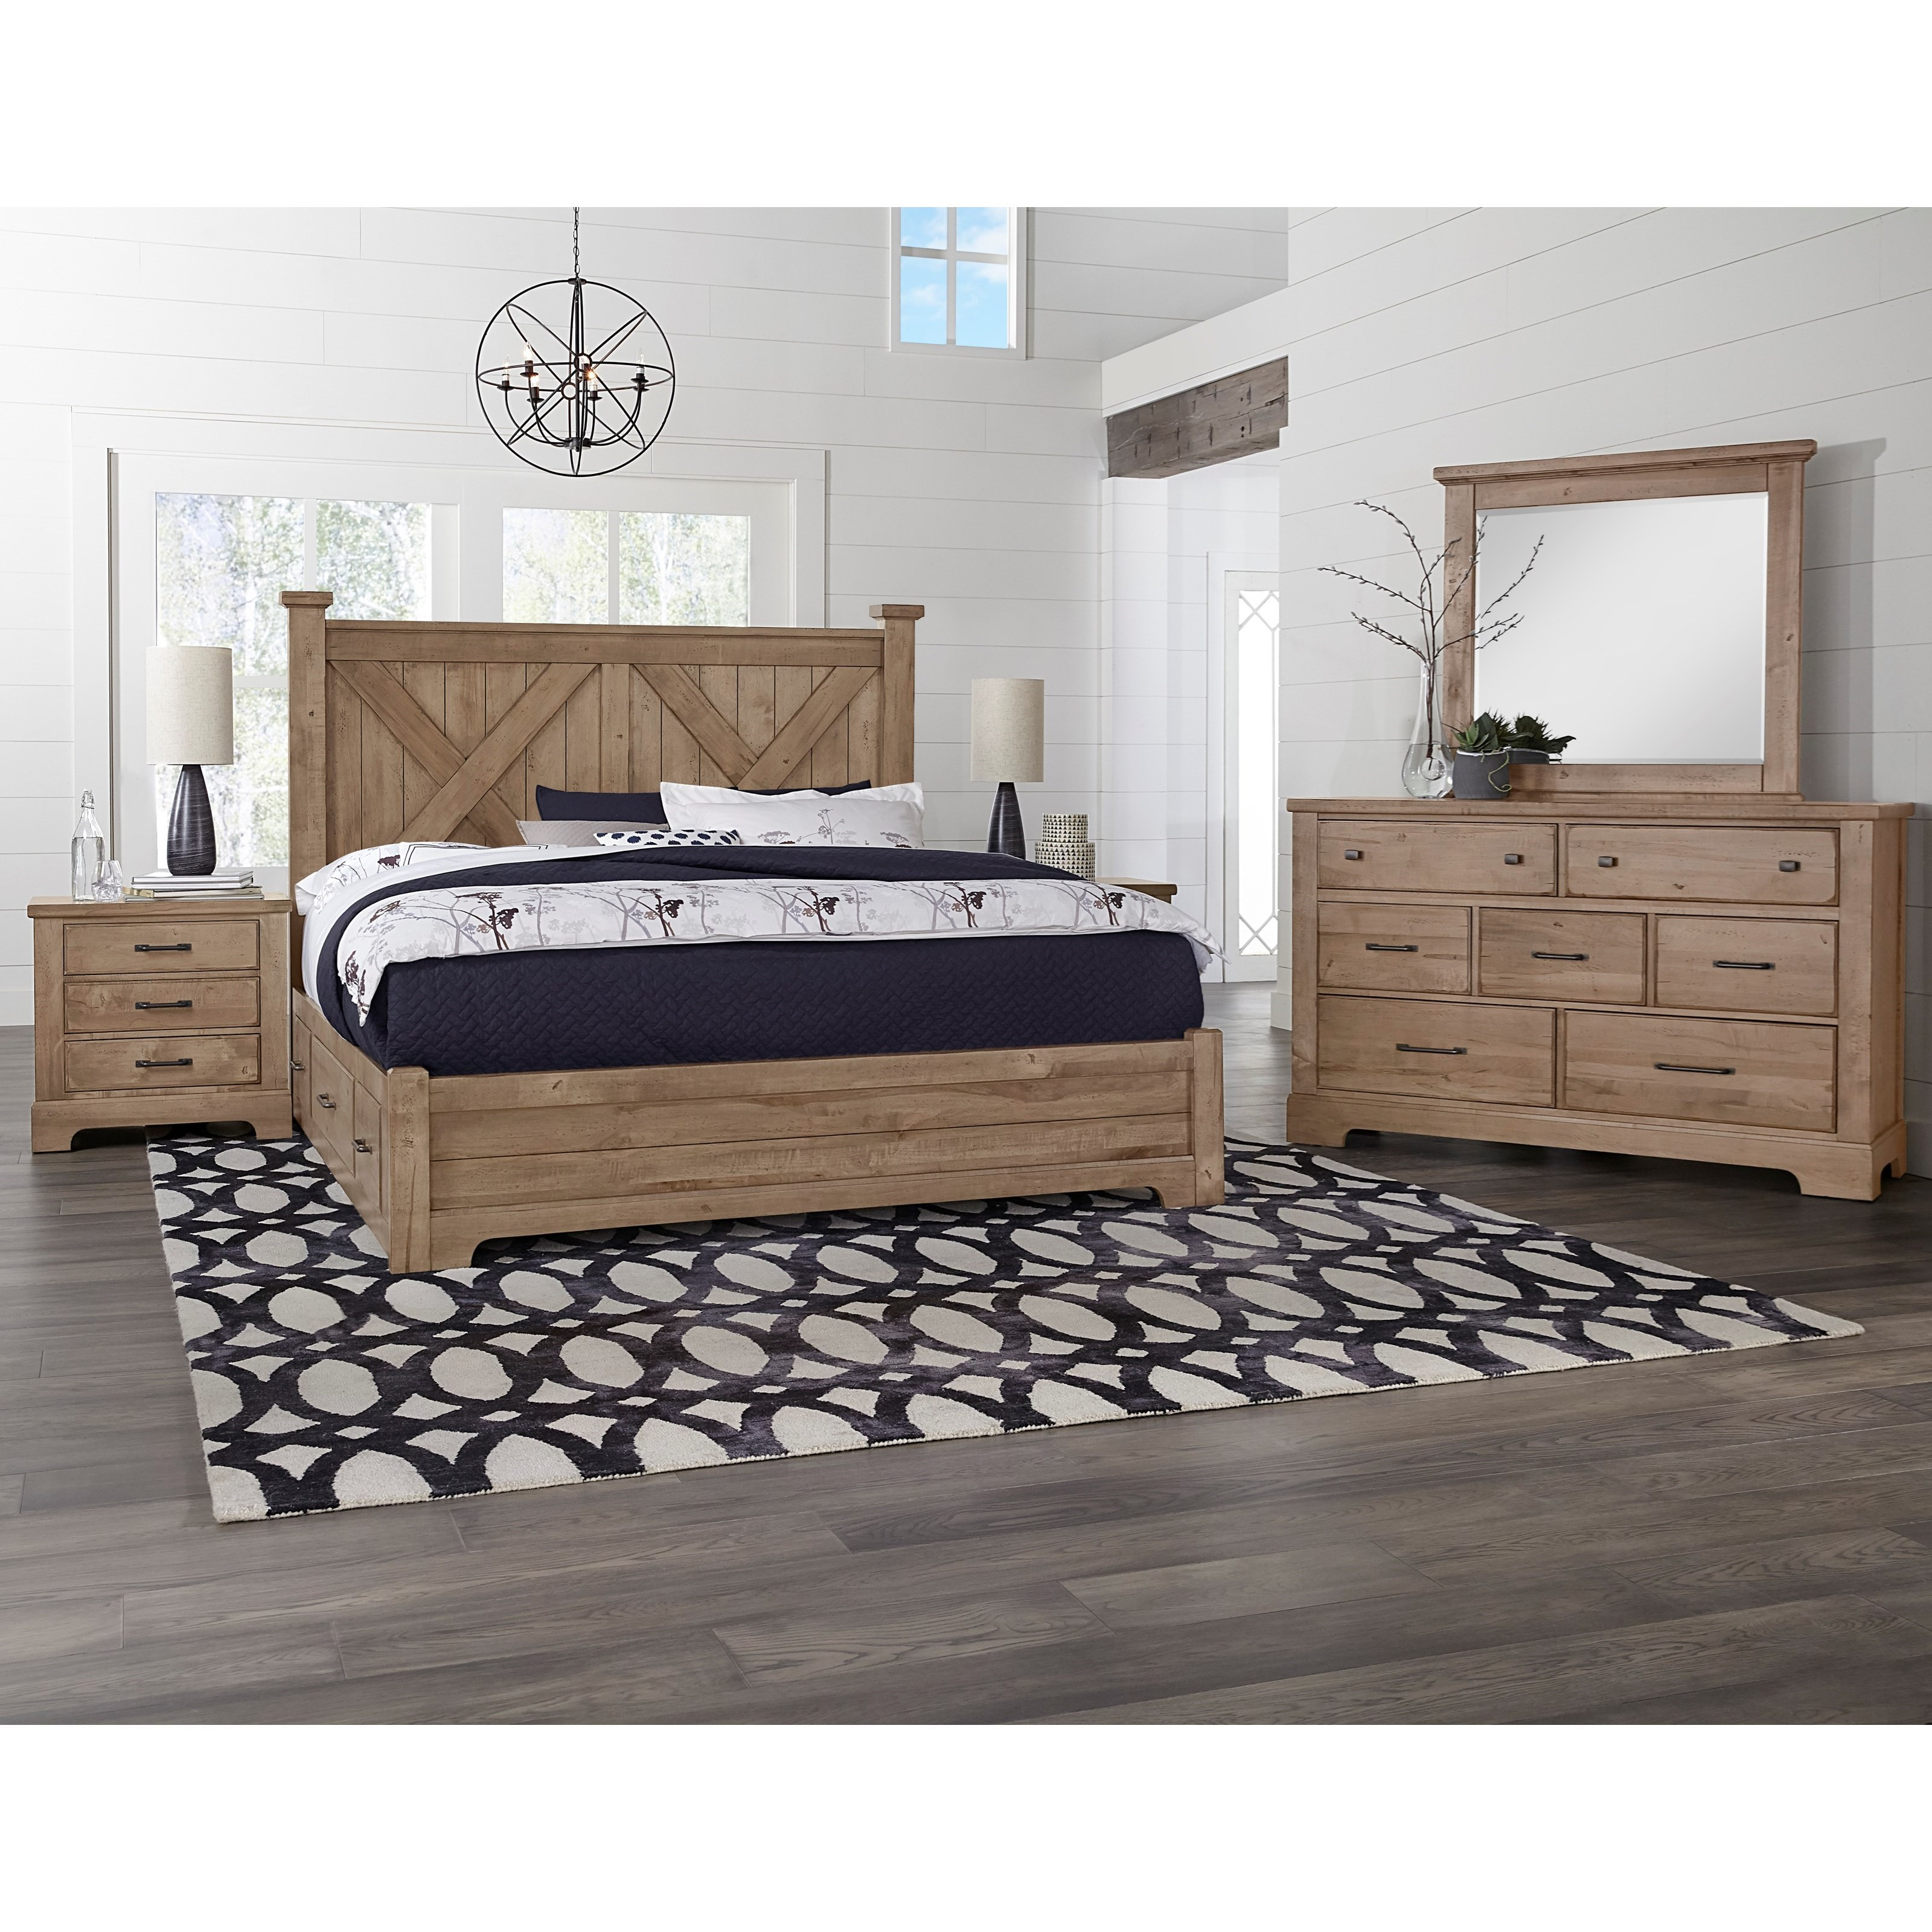 Cool Rustic King Bedroom Group by Artisan & Post at Rooms and Rest